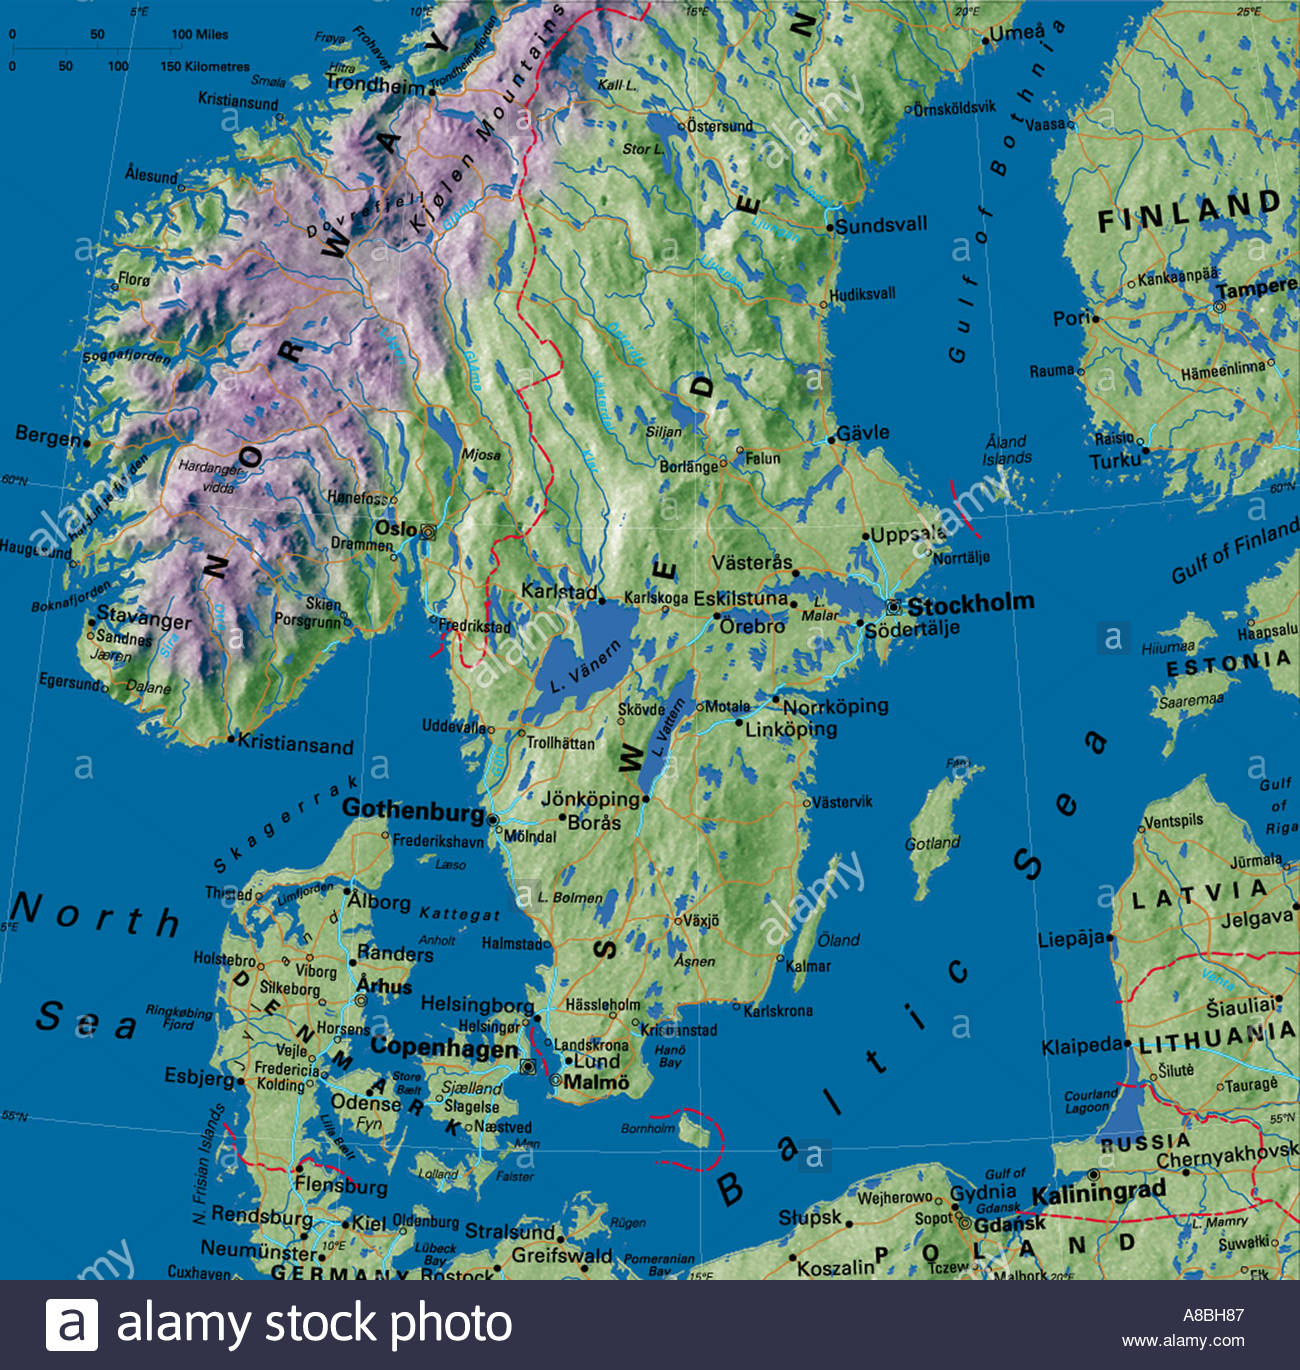 Norway On Map Of Europe.Map Maps Europe Denmark Sweden Norway Scandinavia Stock Photo